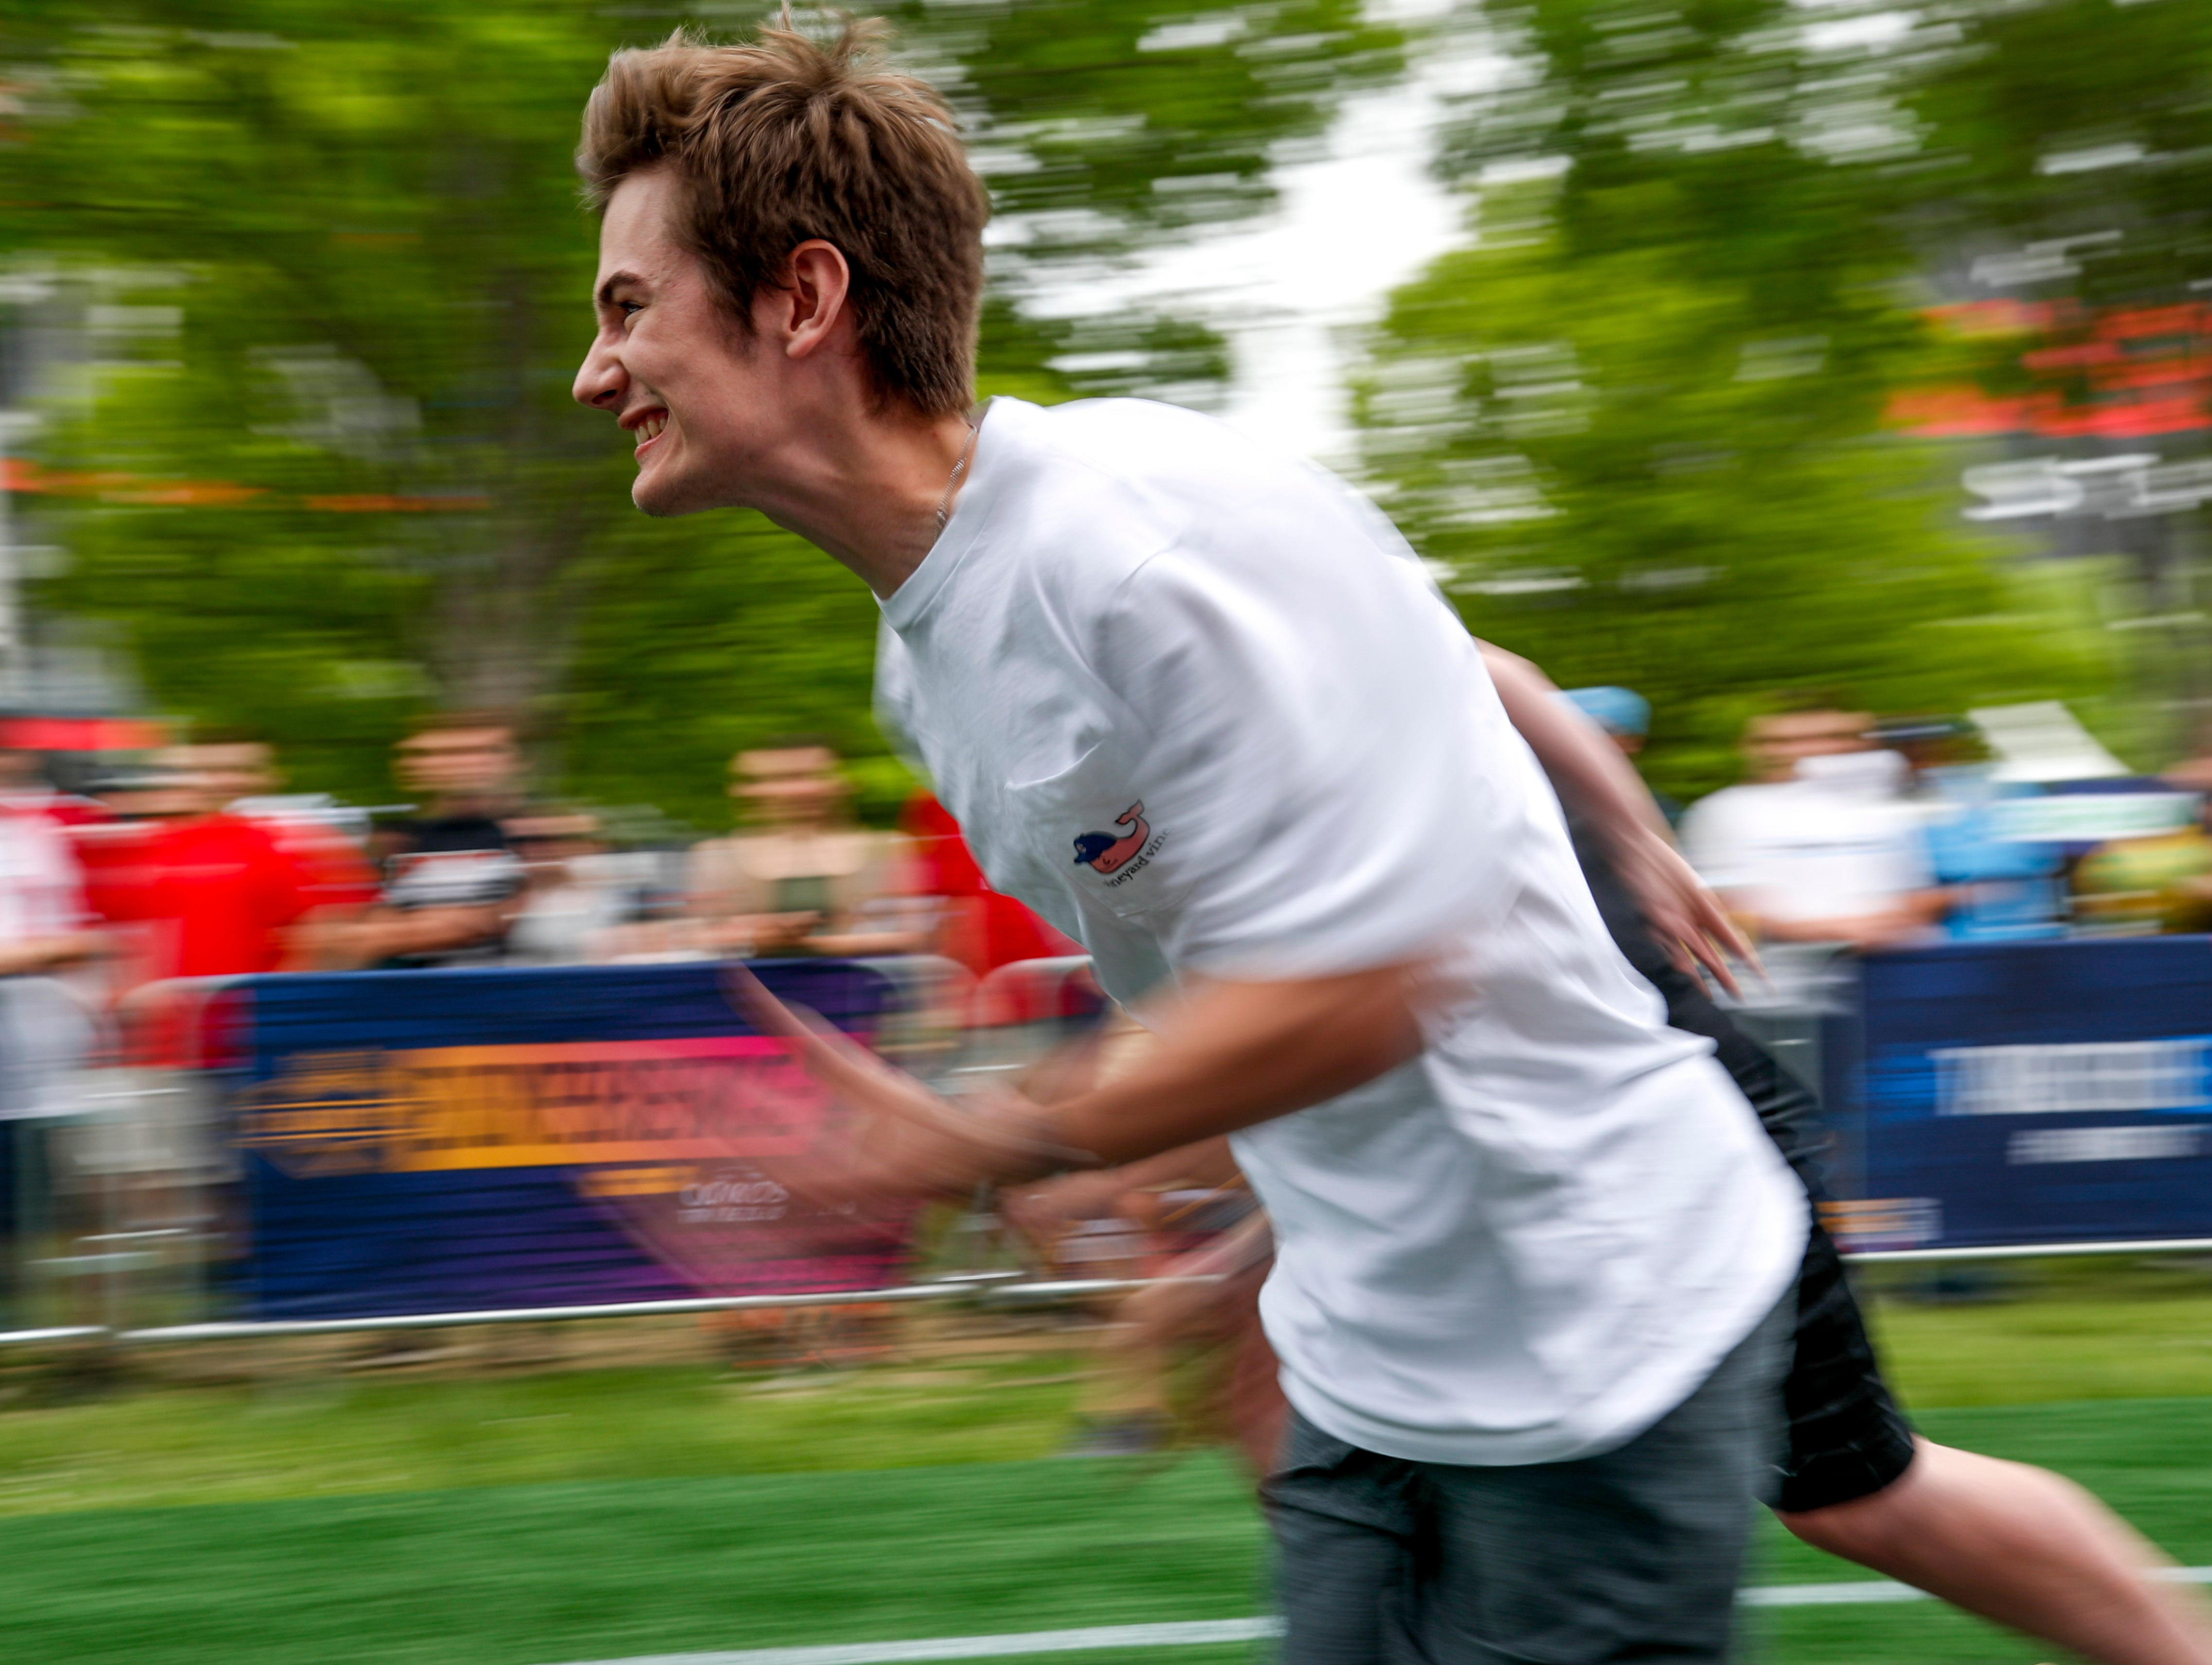 Fans sprint down the greenway during the 40 yard dash during the NFL Draft Experience at Nissan Stadium in Nashville, Tenn., on Thursday, April 25, 2019.